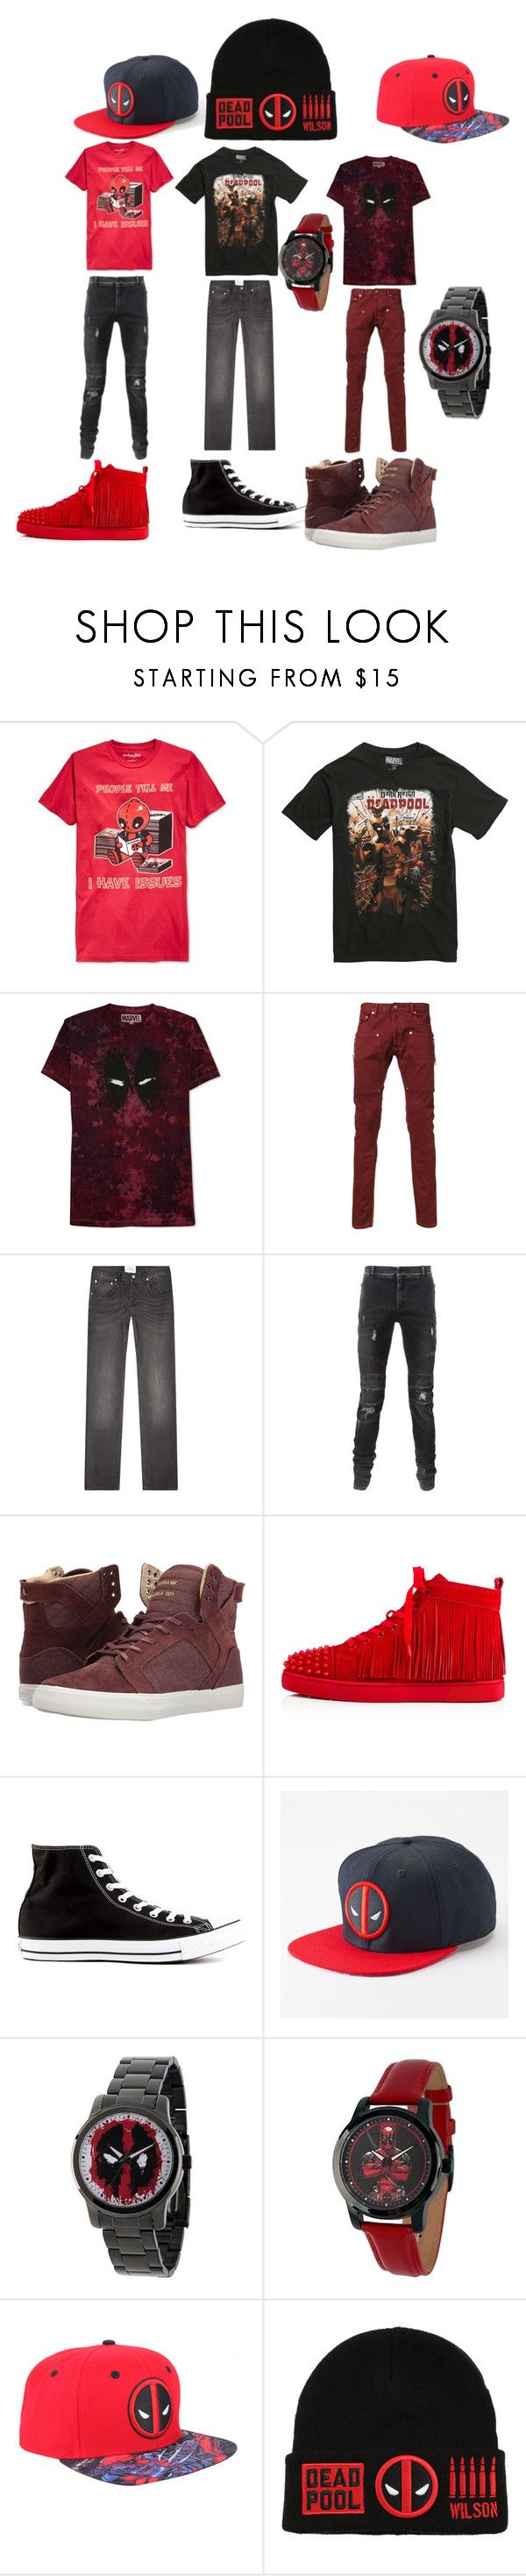 """""""it's deadpool"""" by muneca-moorehead on Polyvore featuring Mighty Fine, Marvel, JEM, Mr. Completely, Sandro, Balmain, Supra, Christian Louboutin, Converse and men's fashion"""